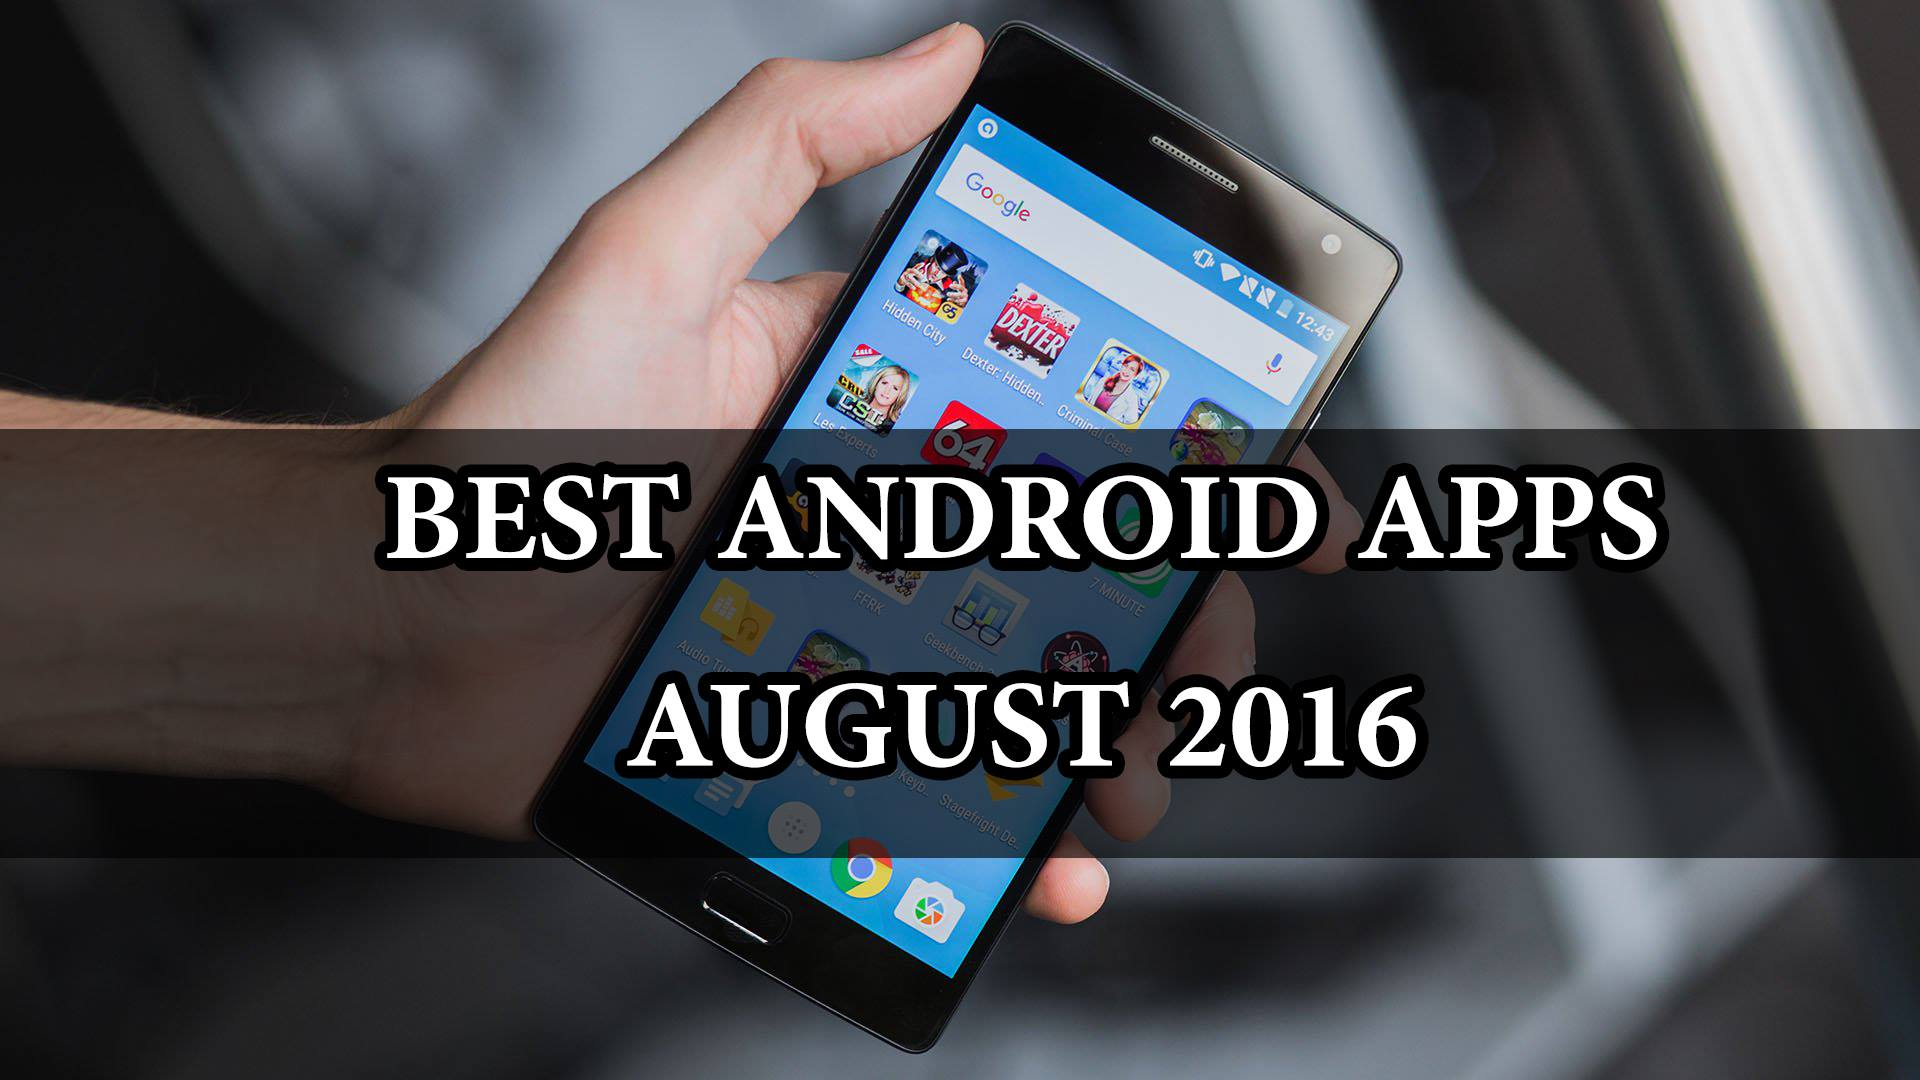 Best August 2016 Android apps